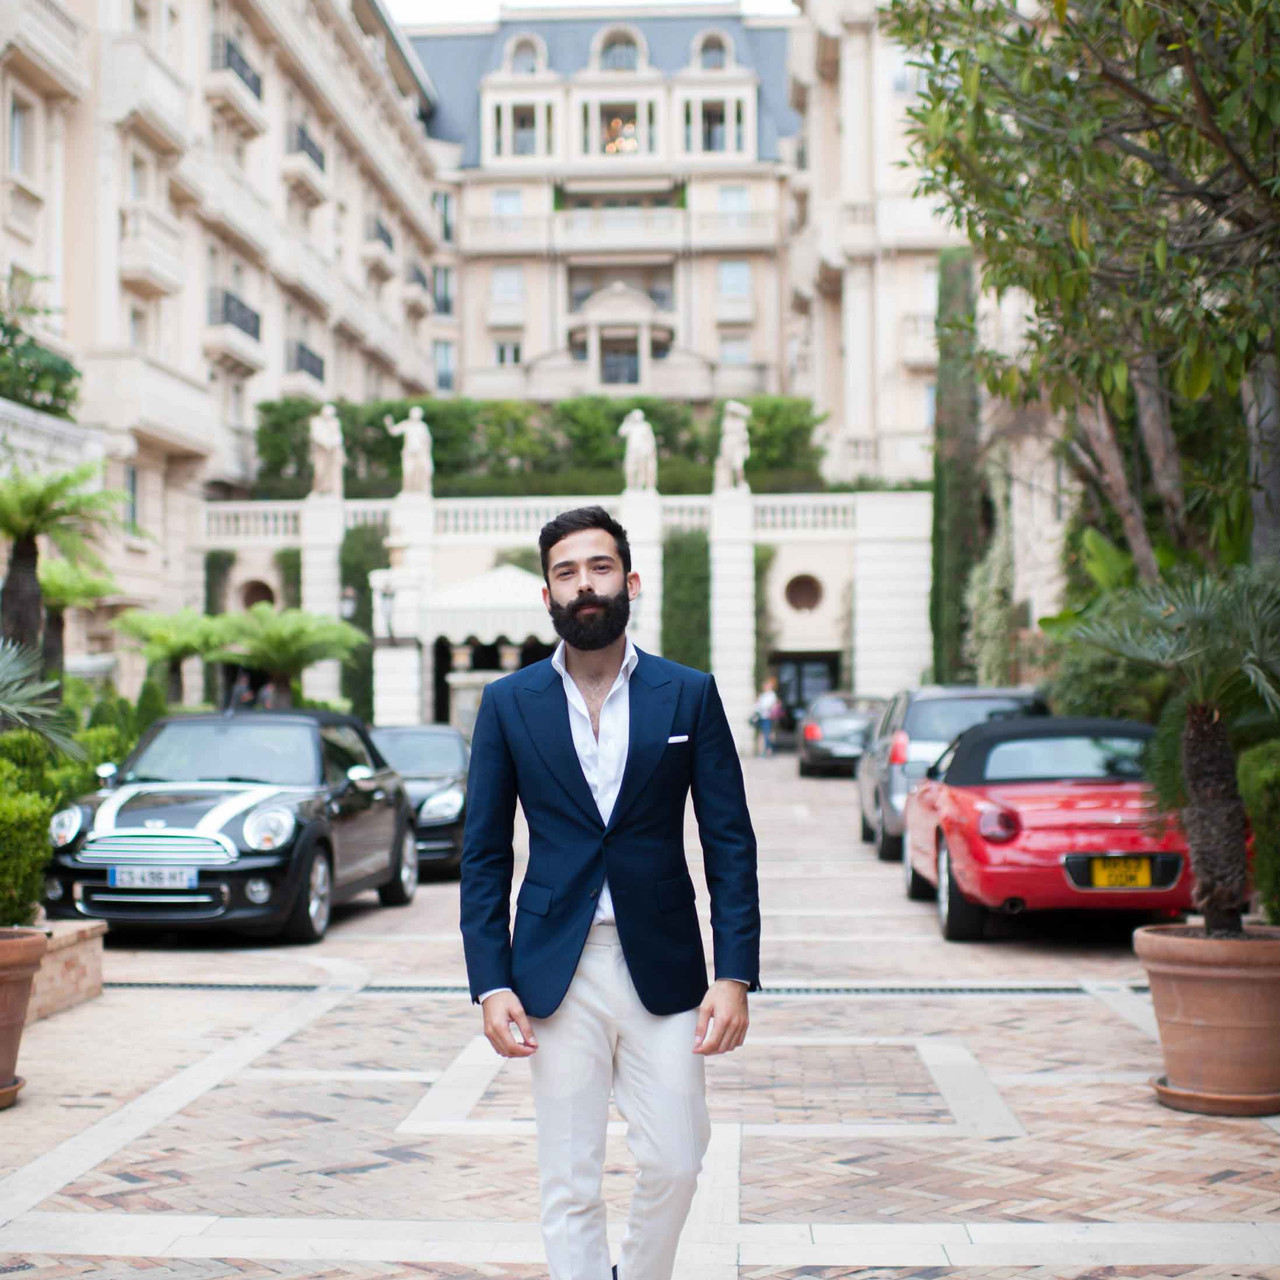 At the iconic entrance of on of the most recognisable places in Monte Carlo: The Hotel Metropole.